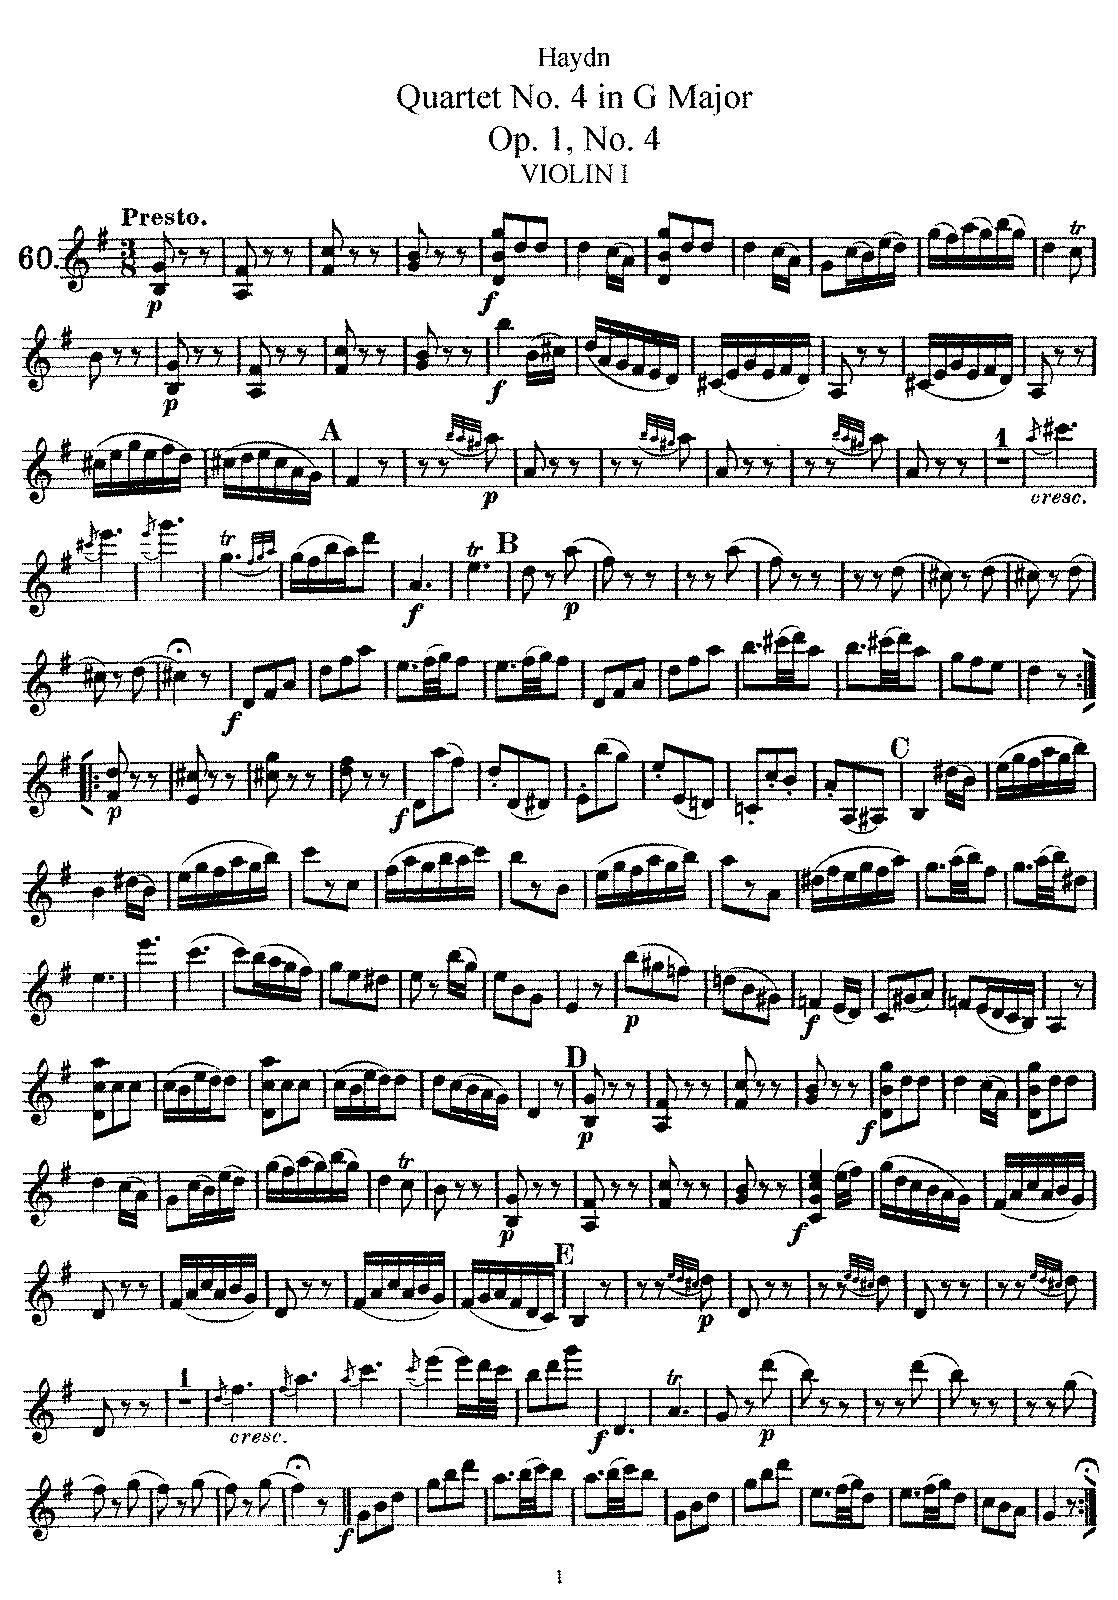 PMLP143602-Haydn - String Quartet No4 in GM Op1 No4 Violin1.pdf